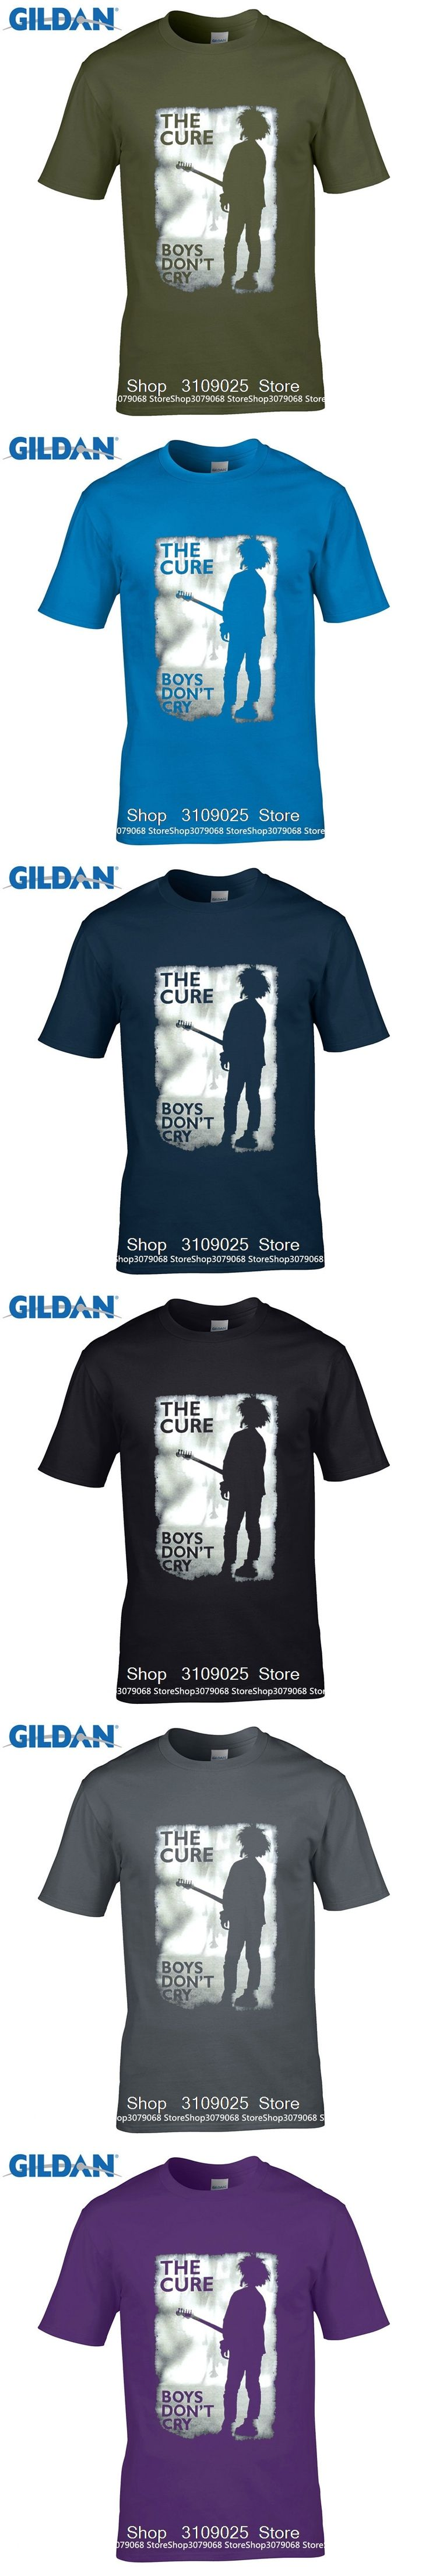 GILDAN DIY Style mens t shirts Printed Men T-shirt Short Sleeve  Tee Shirts The Cure Boys Don't Cry Grey Image Black T Shirt